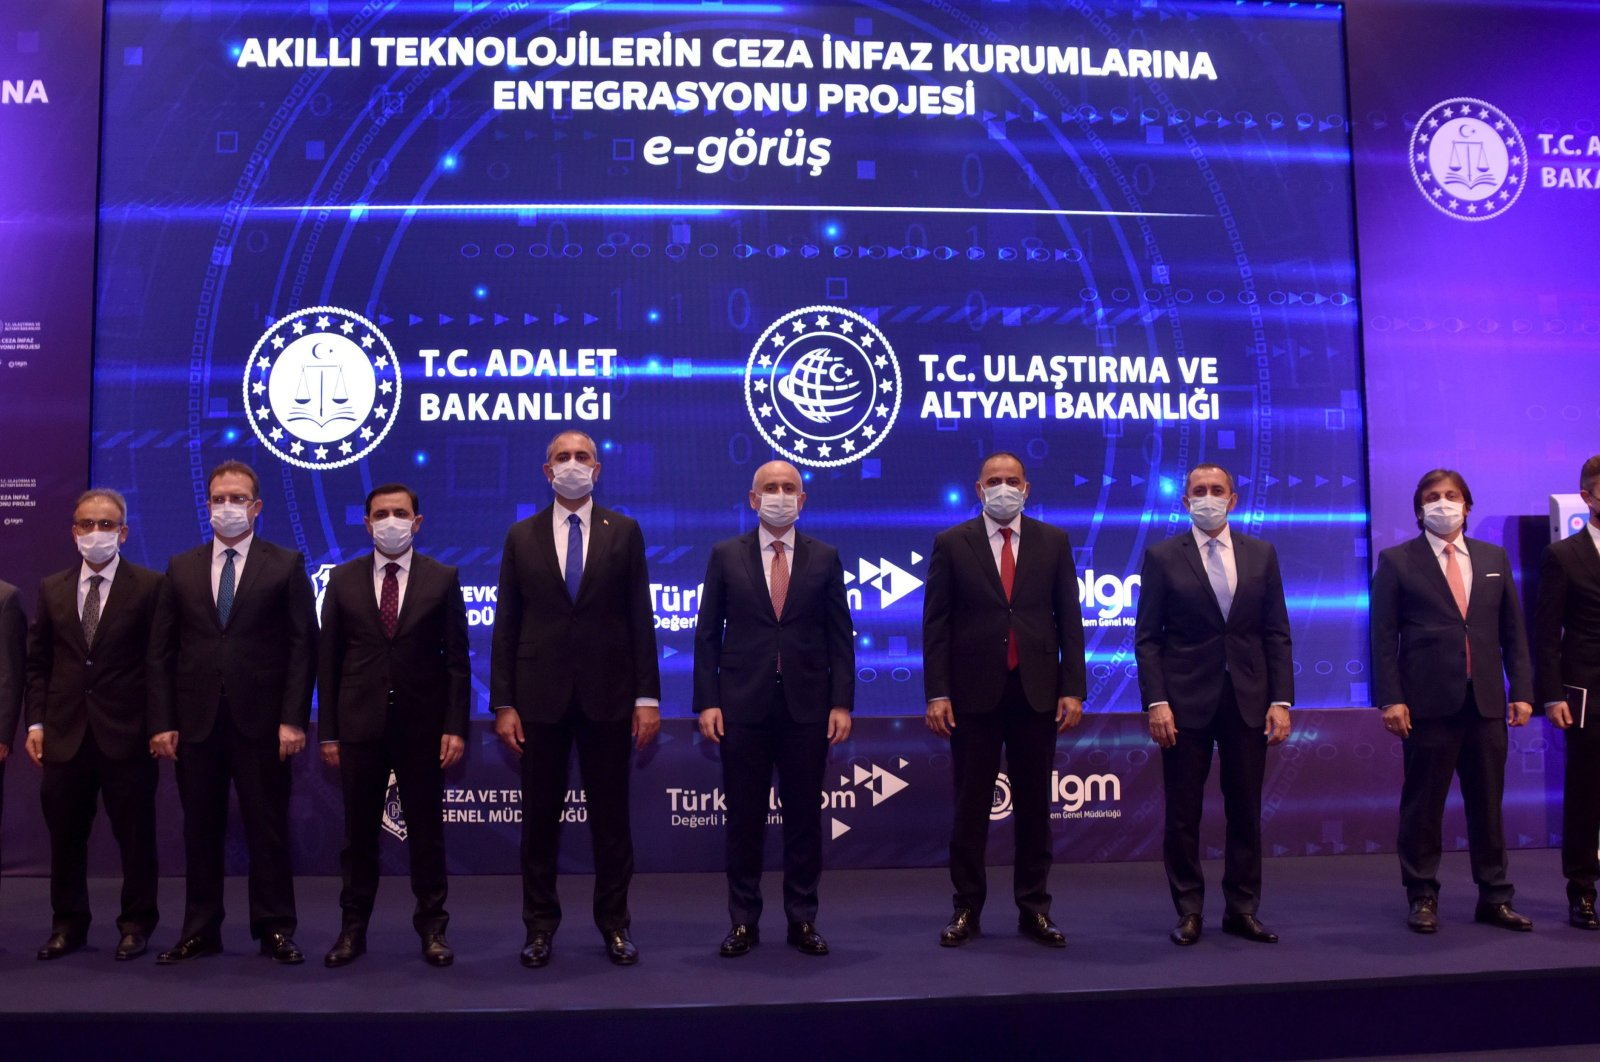 """Justice Minister Abdulhamit Gül (6th from L) and Transport and Infrastructure Minister Adil Karaismailoğlu (6th from R) attend the introductory meeting of the """"Project of Integrating Smart Technologies into Penal Institutions,"""" Ankara, Turkey, Oct. 22, 2020."""